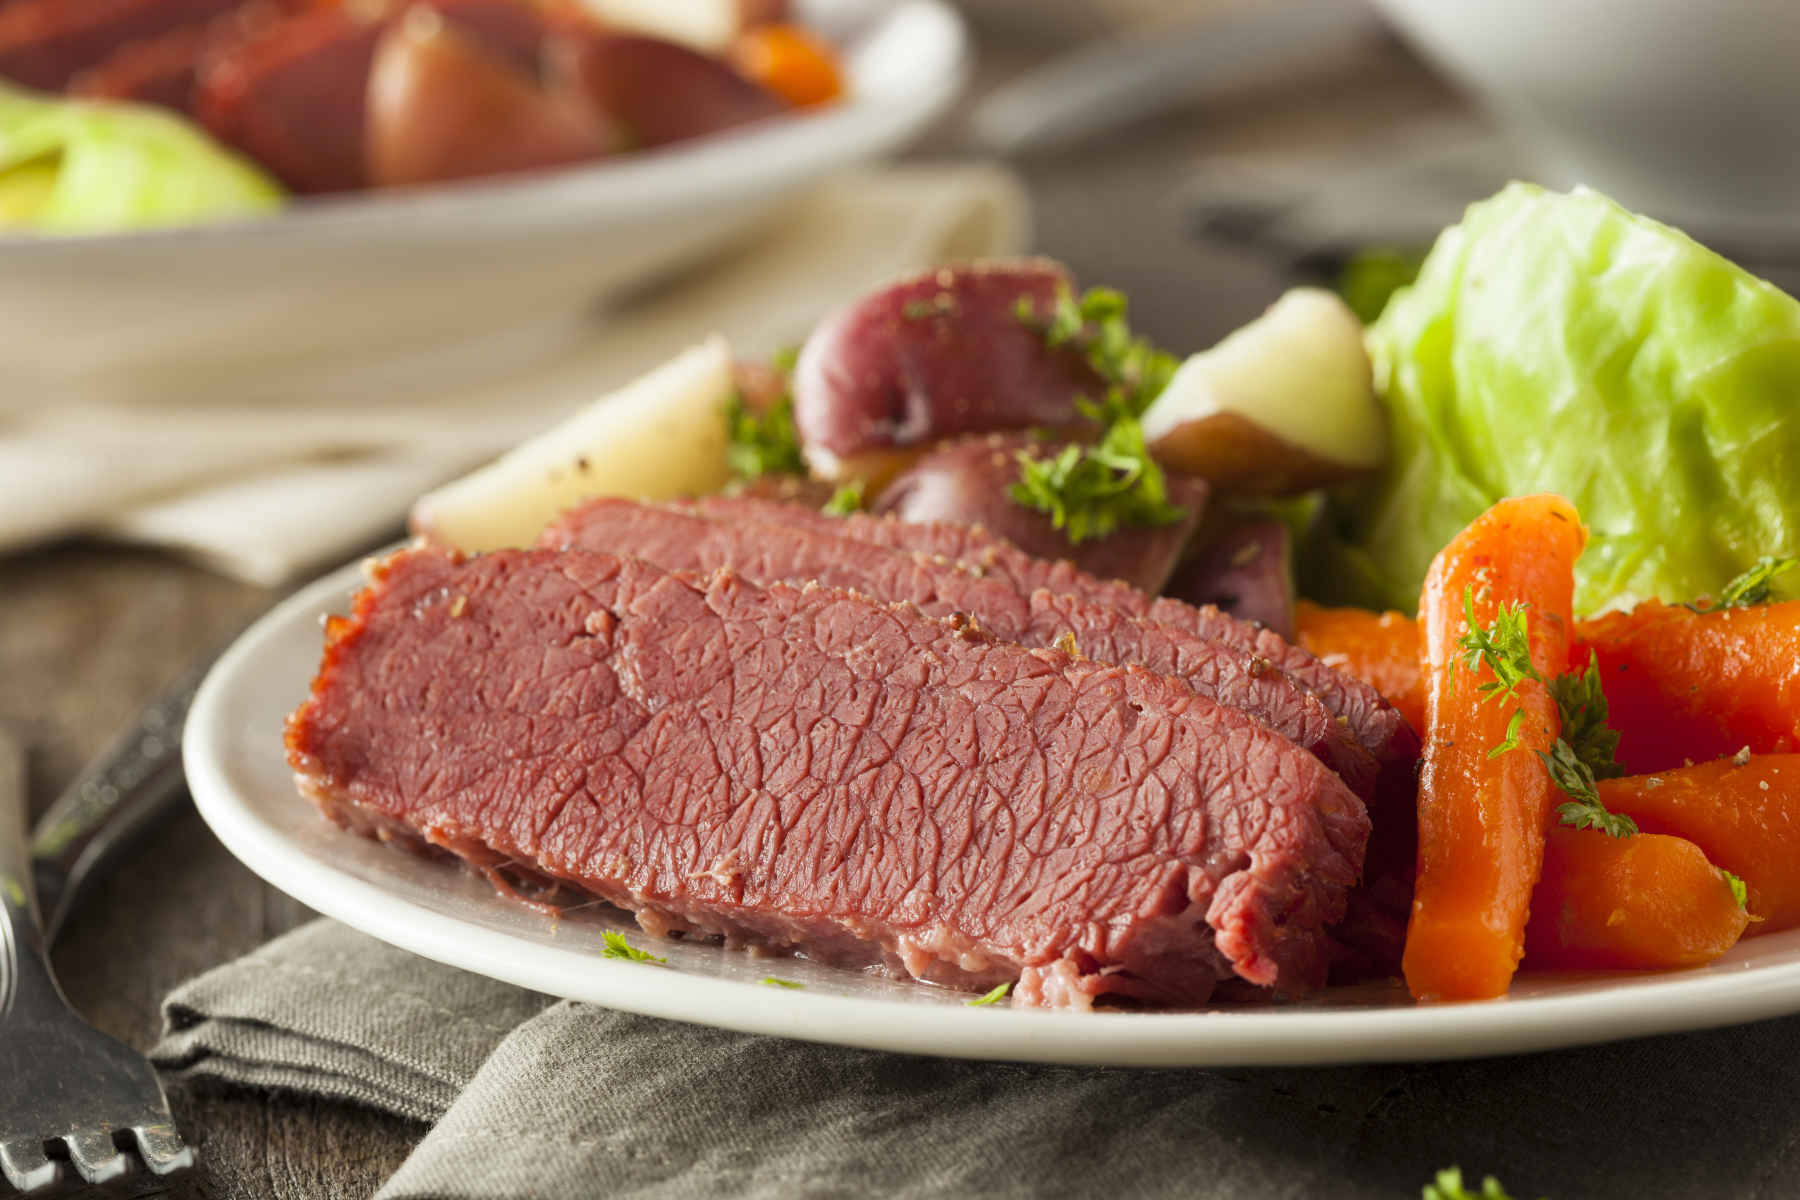 Celebrate St. Pat's Day with Homemade Corned Beef